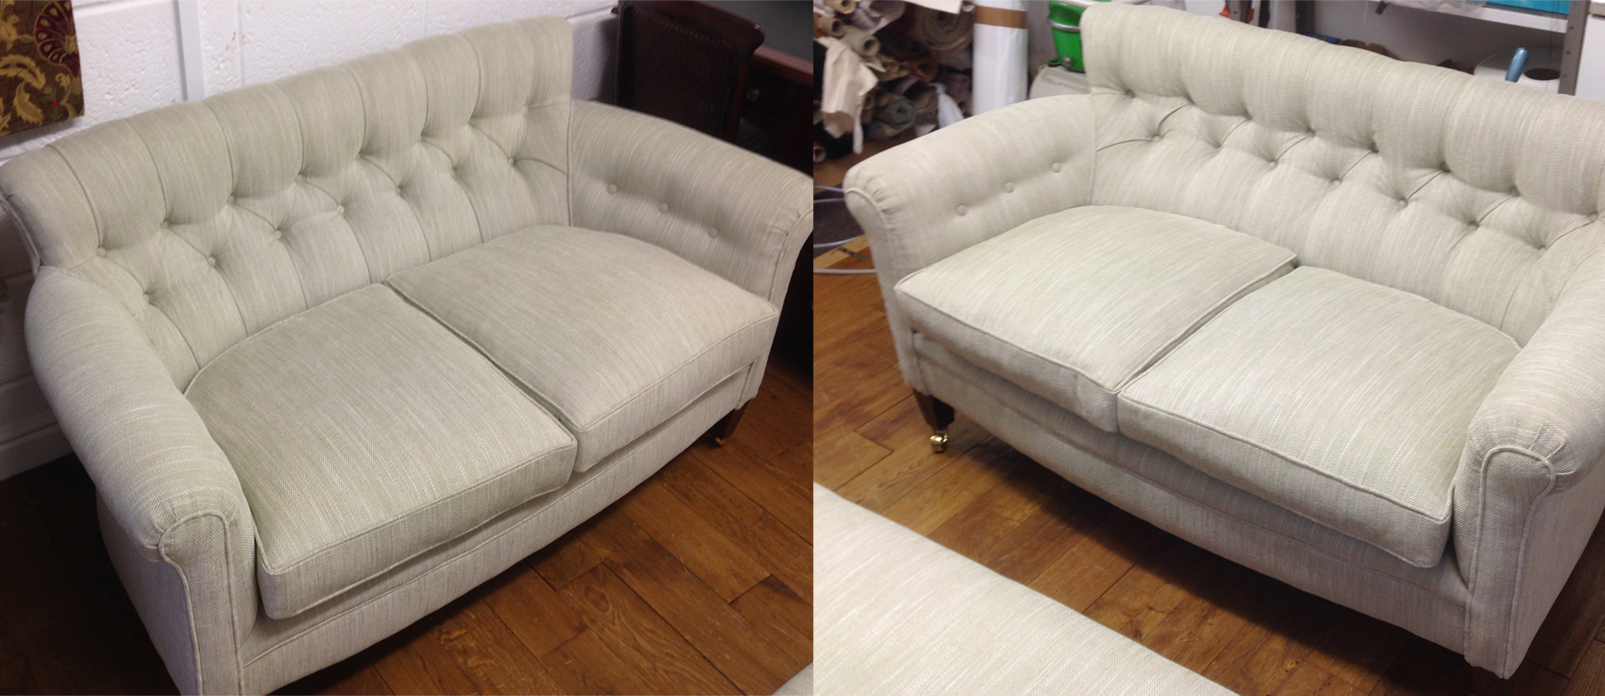 Reproduction Victorian Chairs - A replica chair and sofa to match